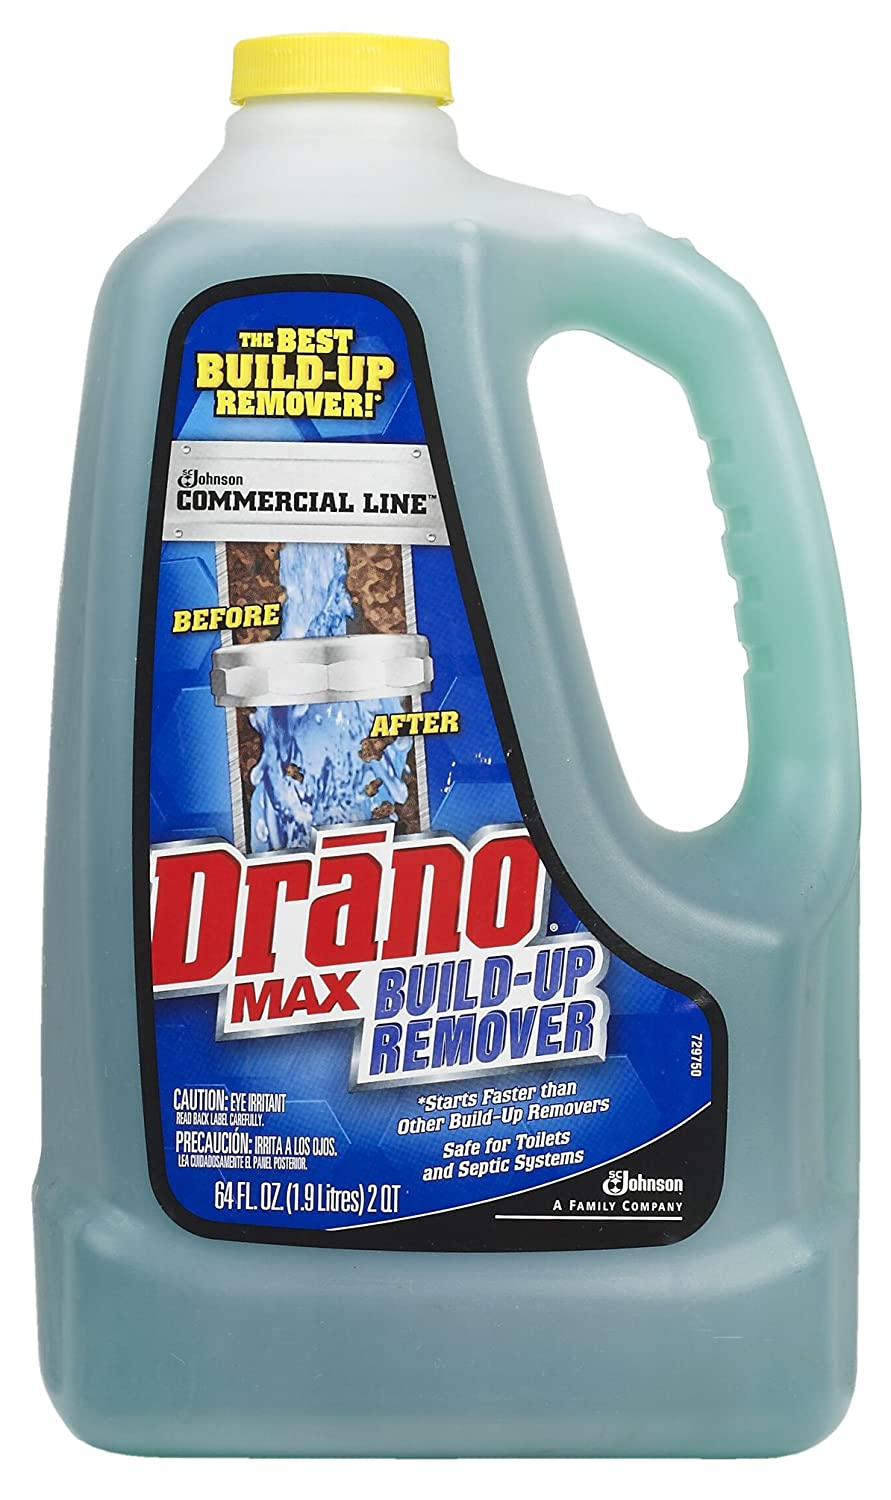 Amazon.com: Drano Max Build-Up Remover - 10115 64Oz Drano Build-Up ...